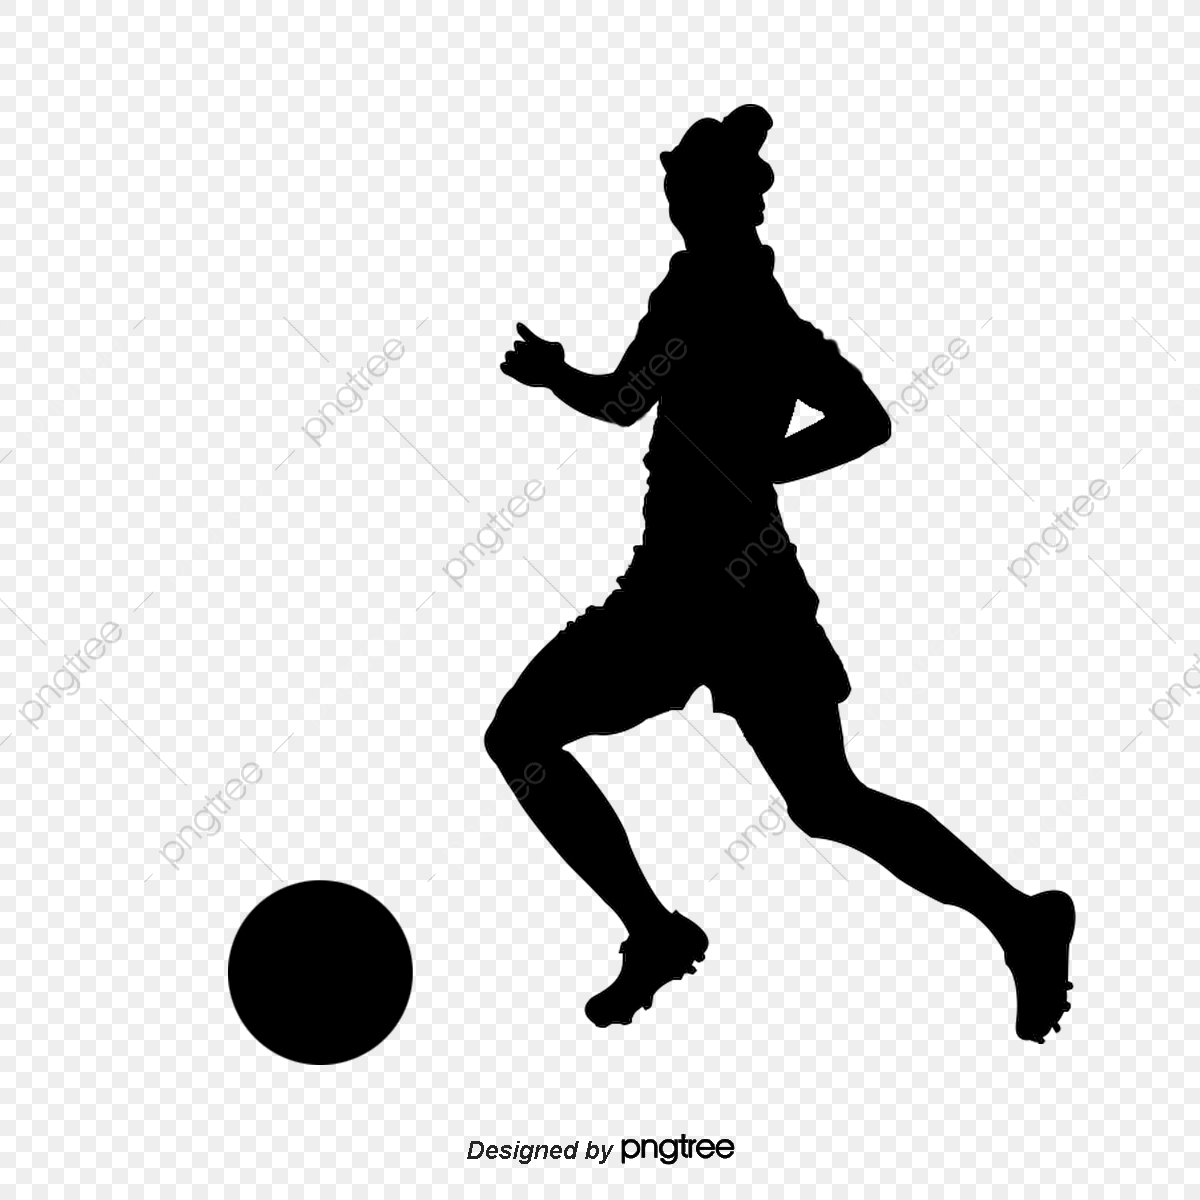 Silhouette Of Women Football Players Running And Kicking, Silhouette.